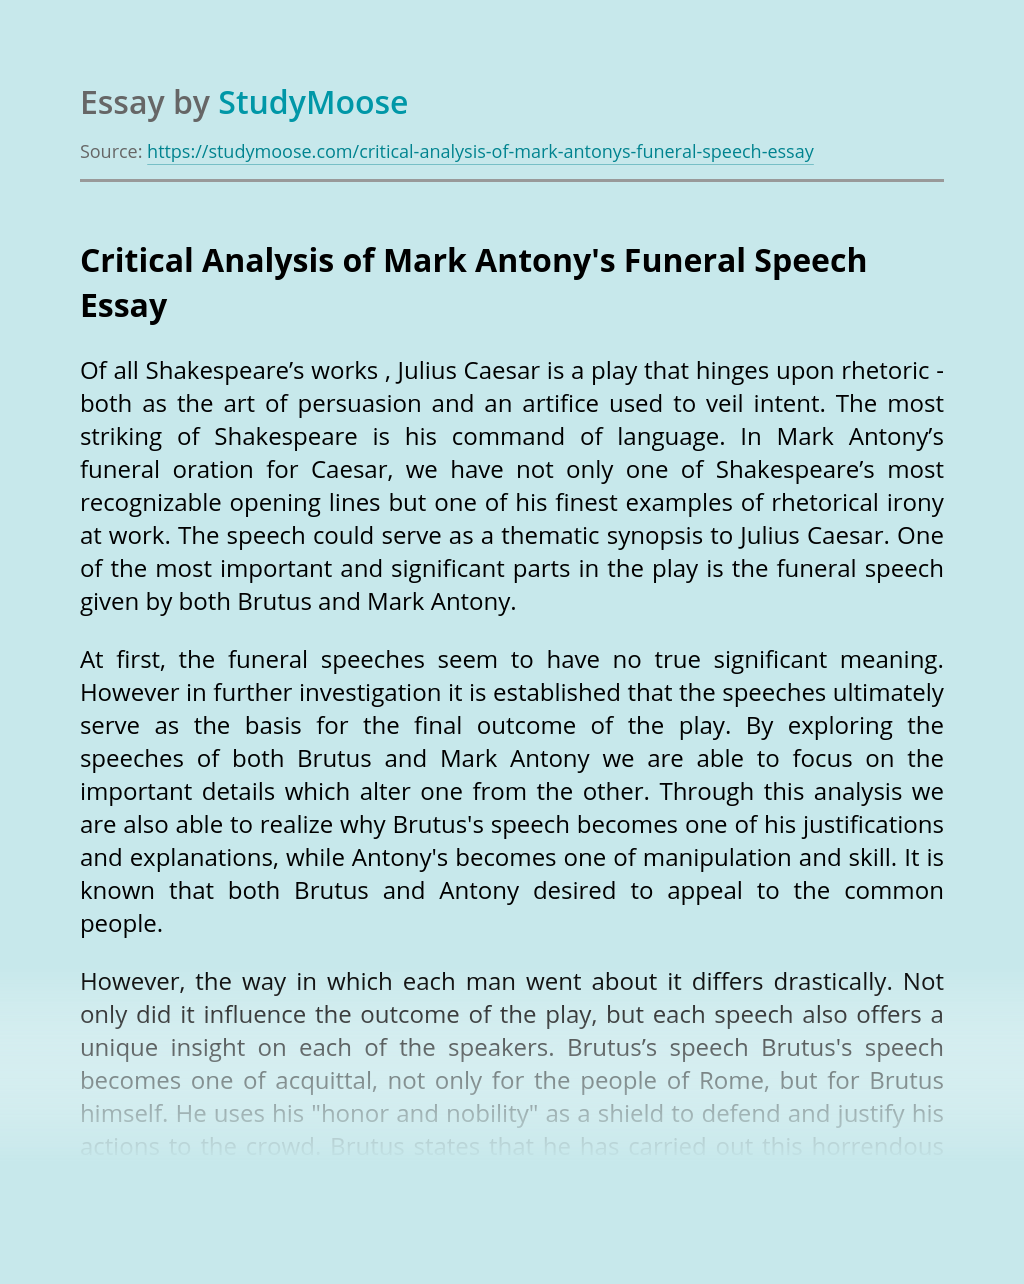 Critical Analysis of Mark Antony's Funeral Speech